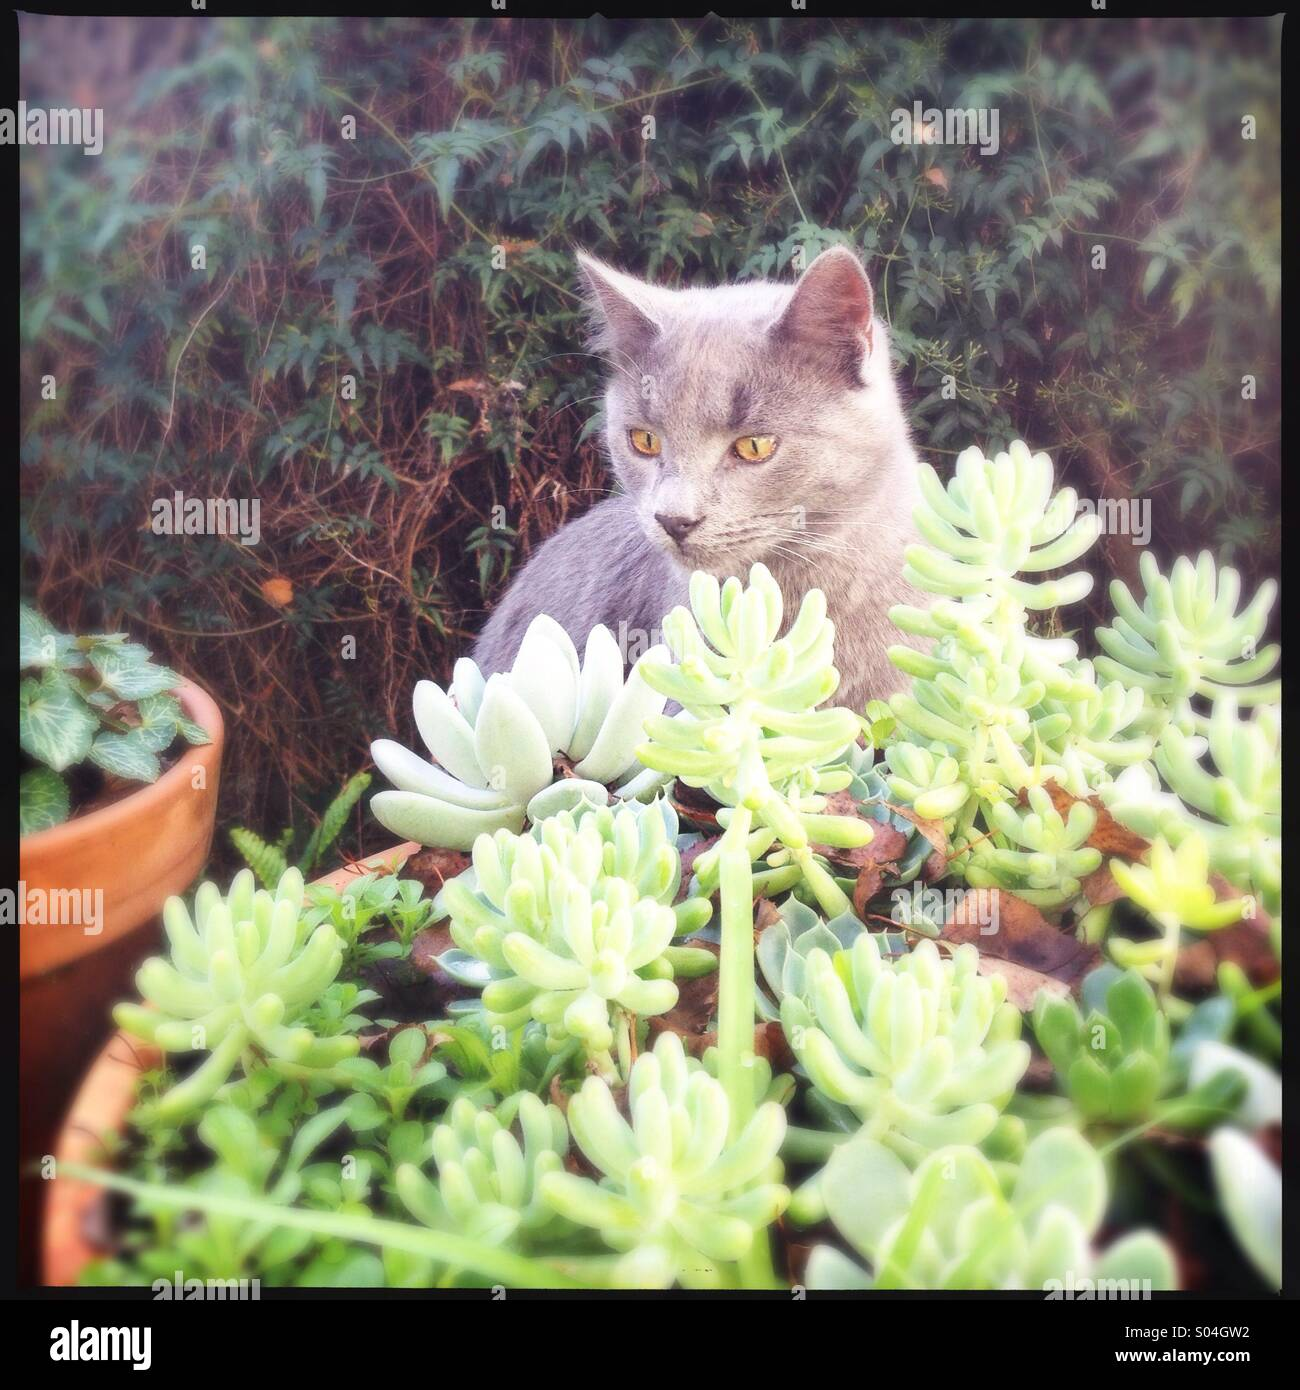 Cat among green bushes - Stock Image